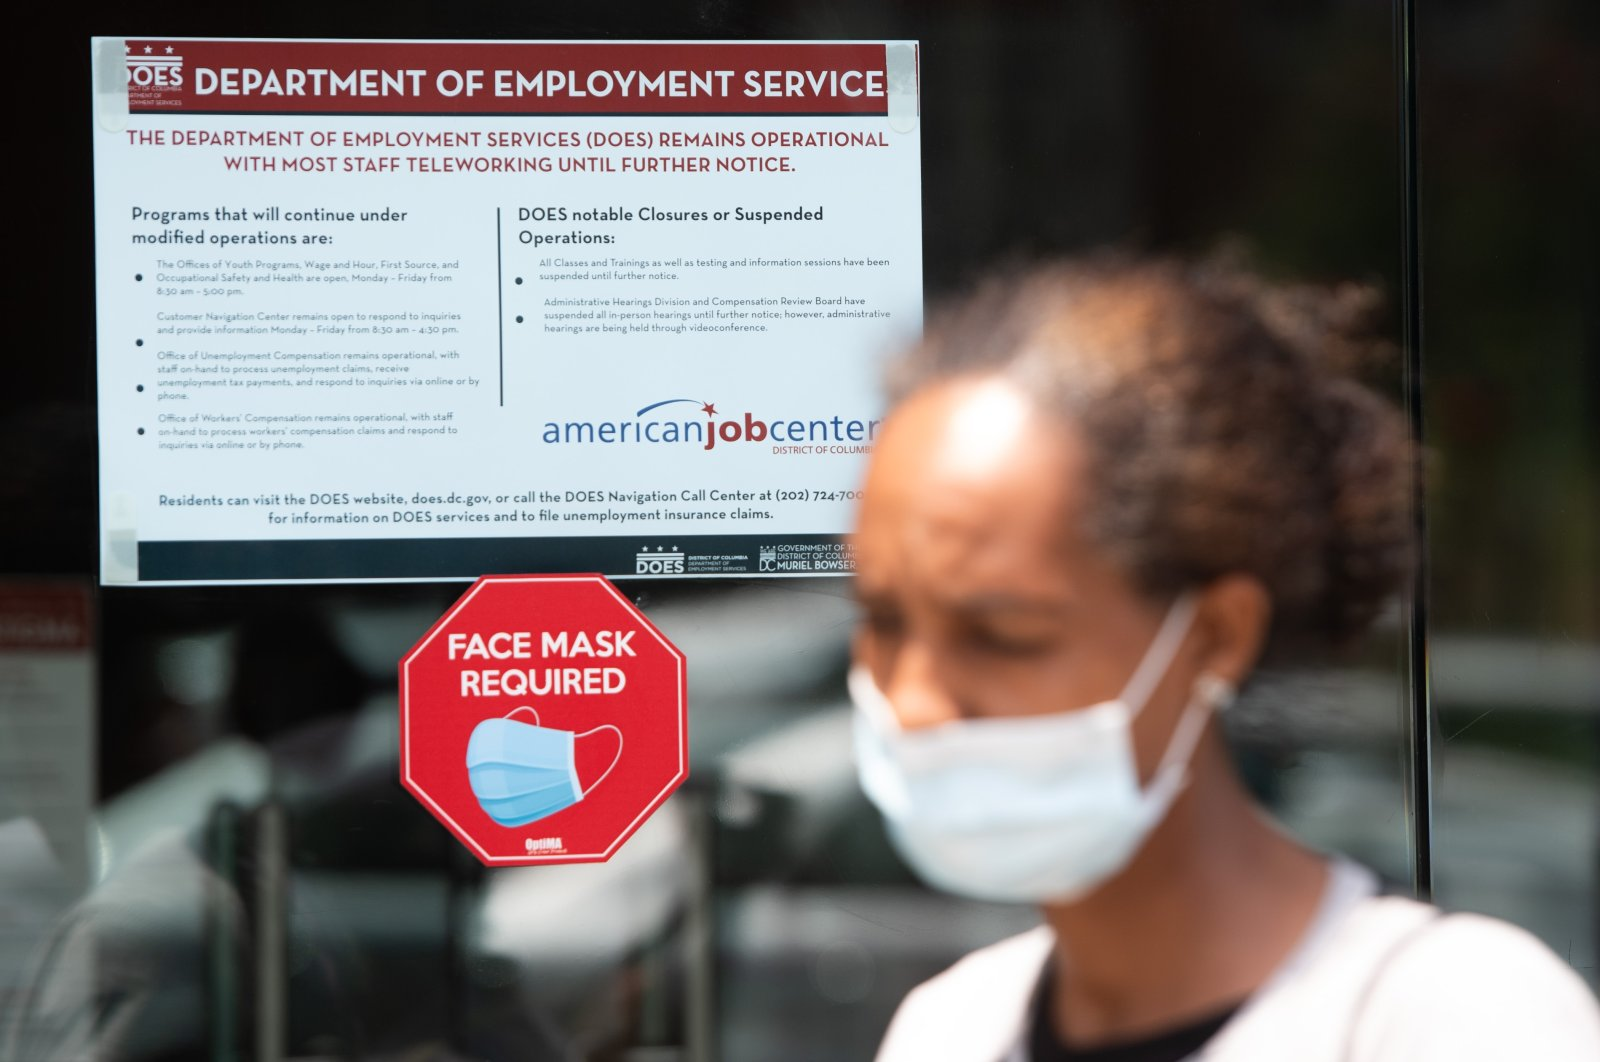 Diana Yitbarek, 44, leaves the D.C. Department of Employment Services after trying to find out about her unemployment benefits in Washington, D.C., July 16, 2020. (AFP Photo)